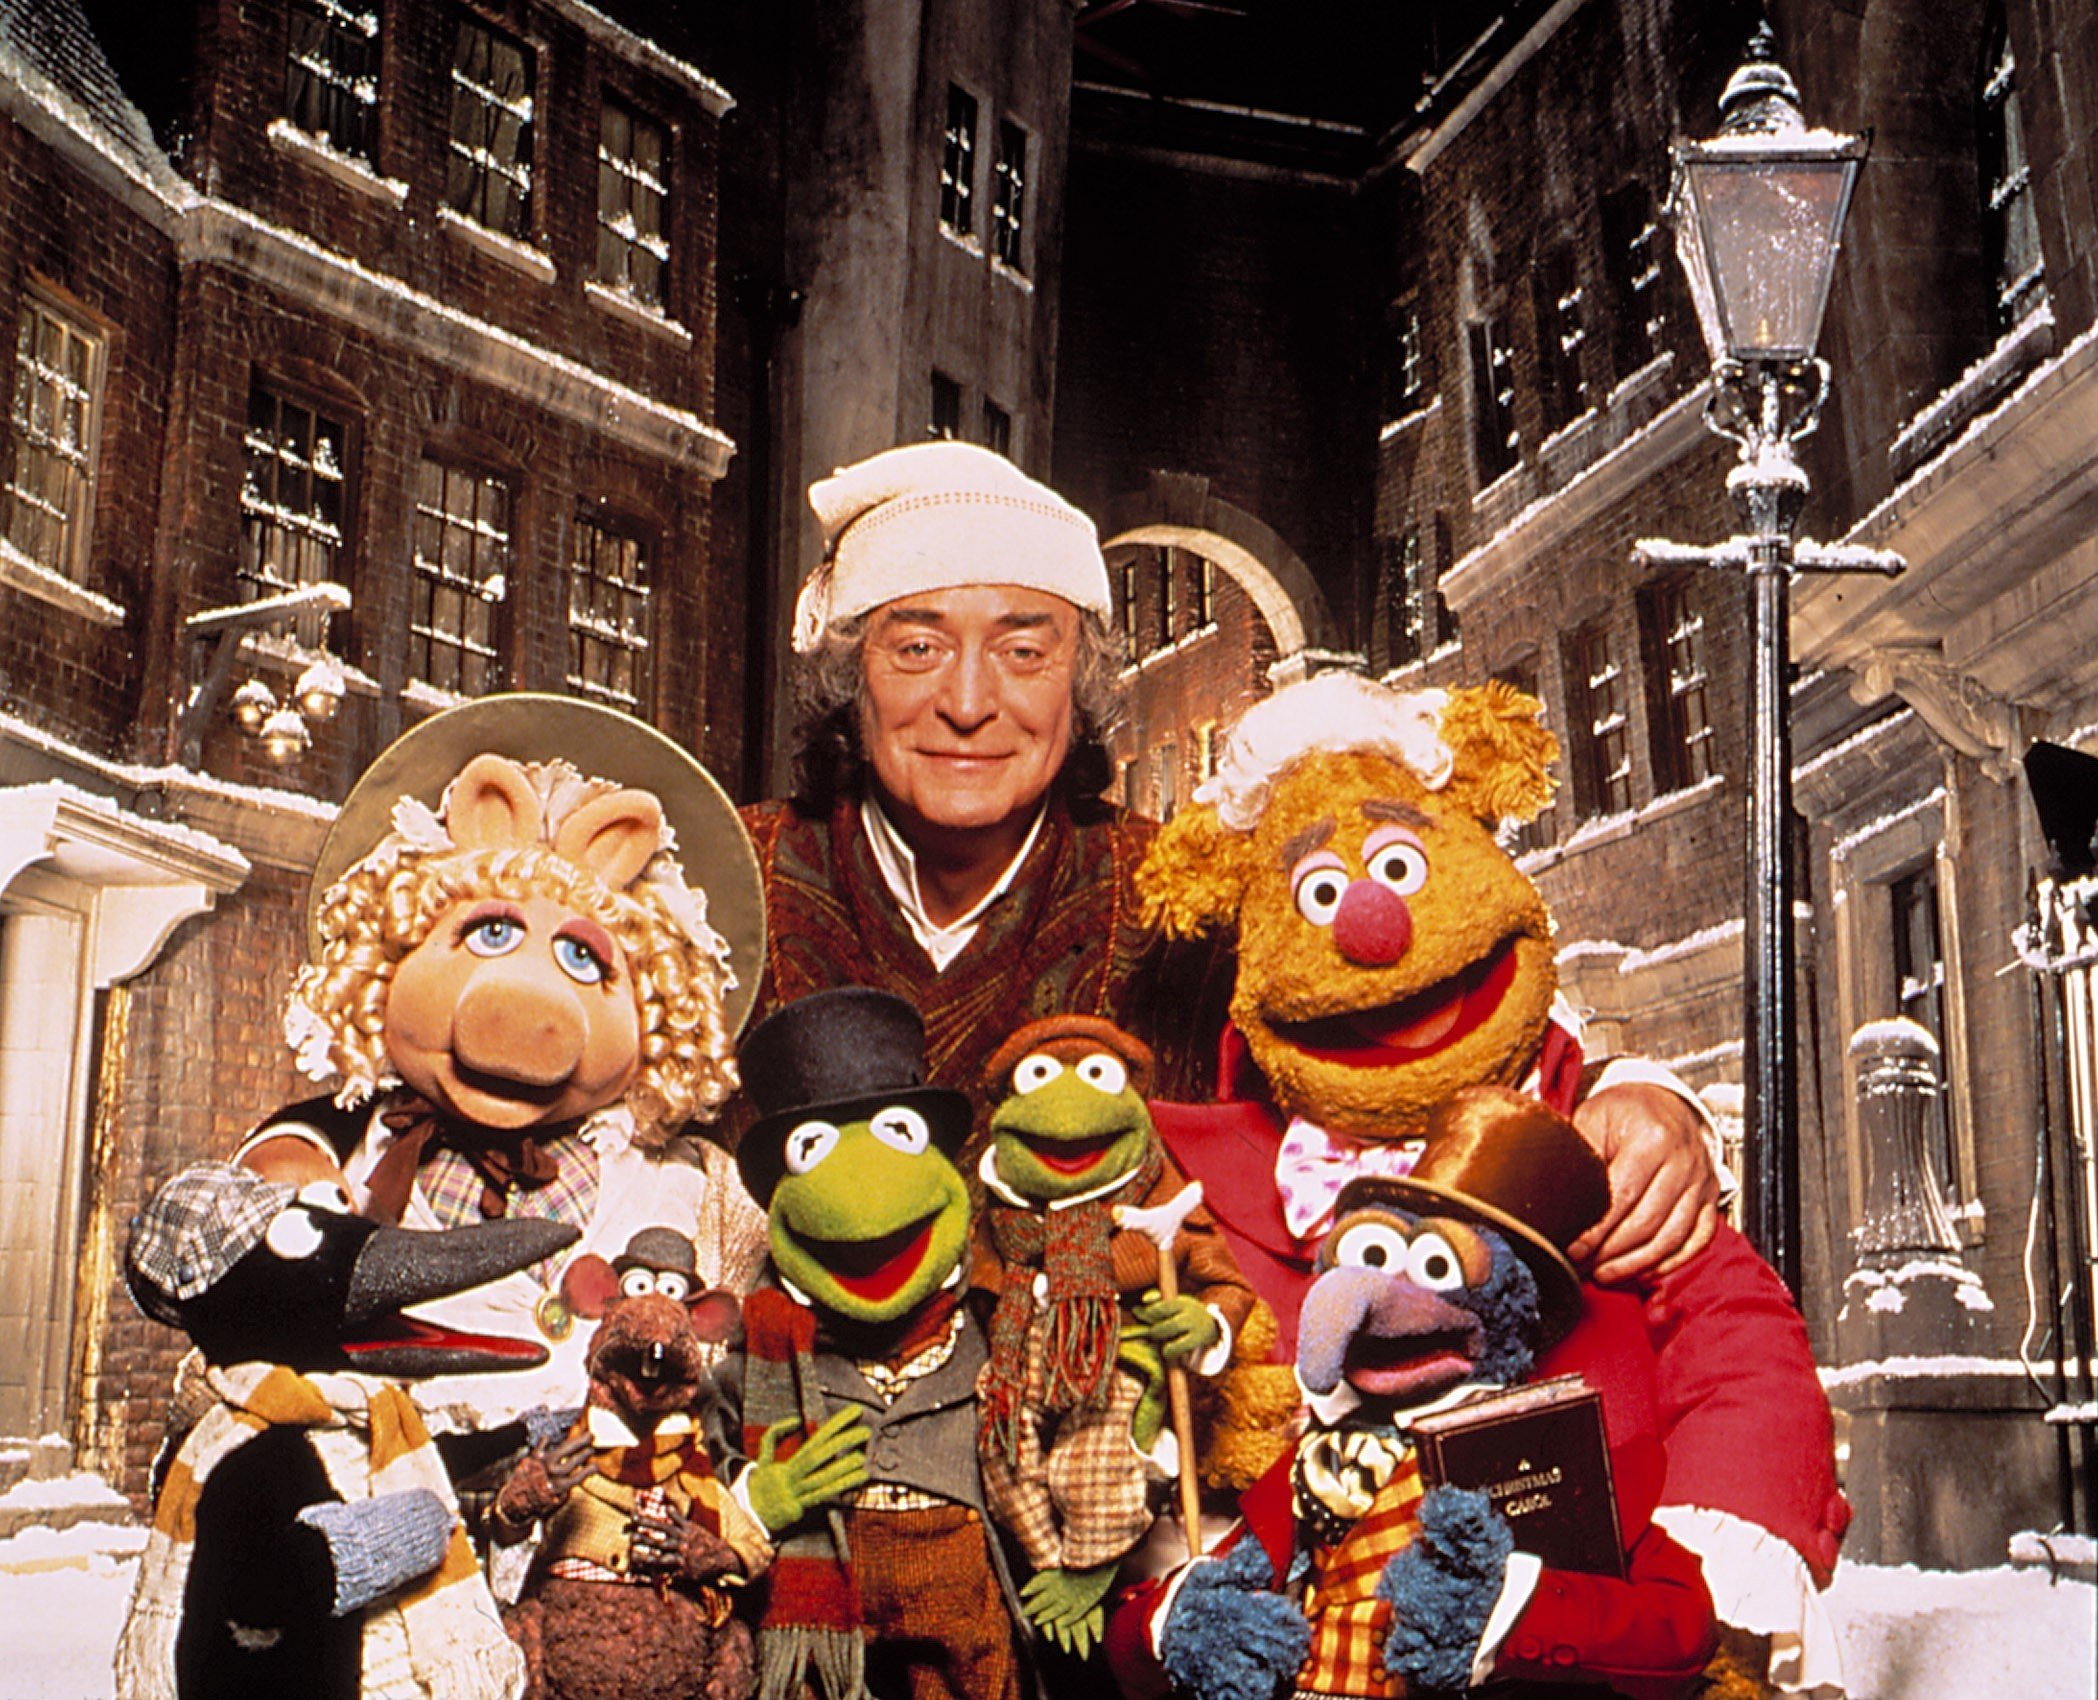 michael caine 1 The Muppets: All The Movies, Ranked!